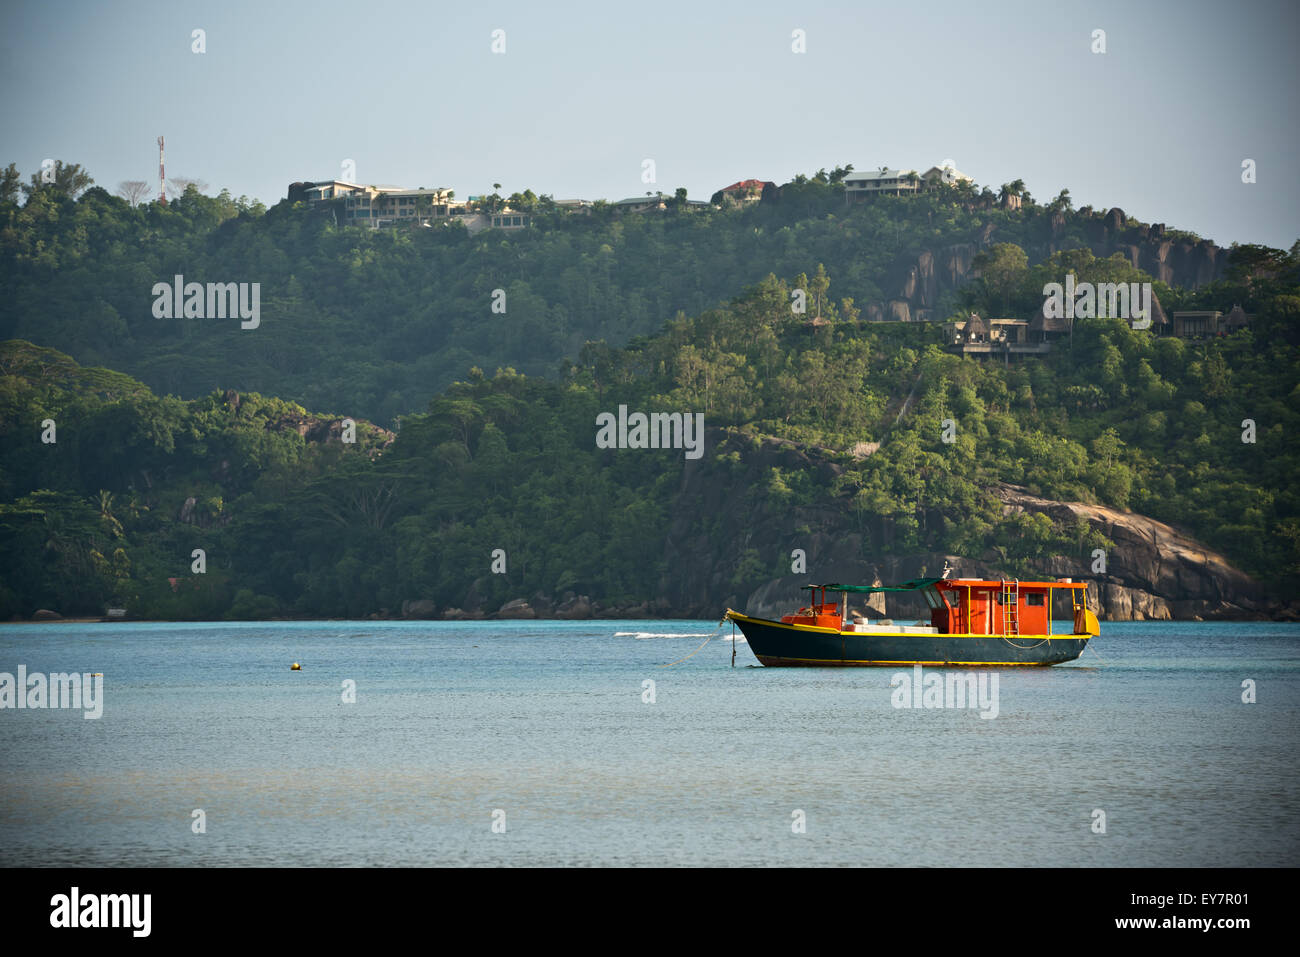 View of Seychelles coastline with a boat on a foreground. Horizontal shot - Stock Image